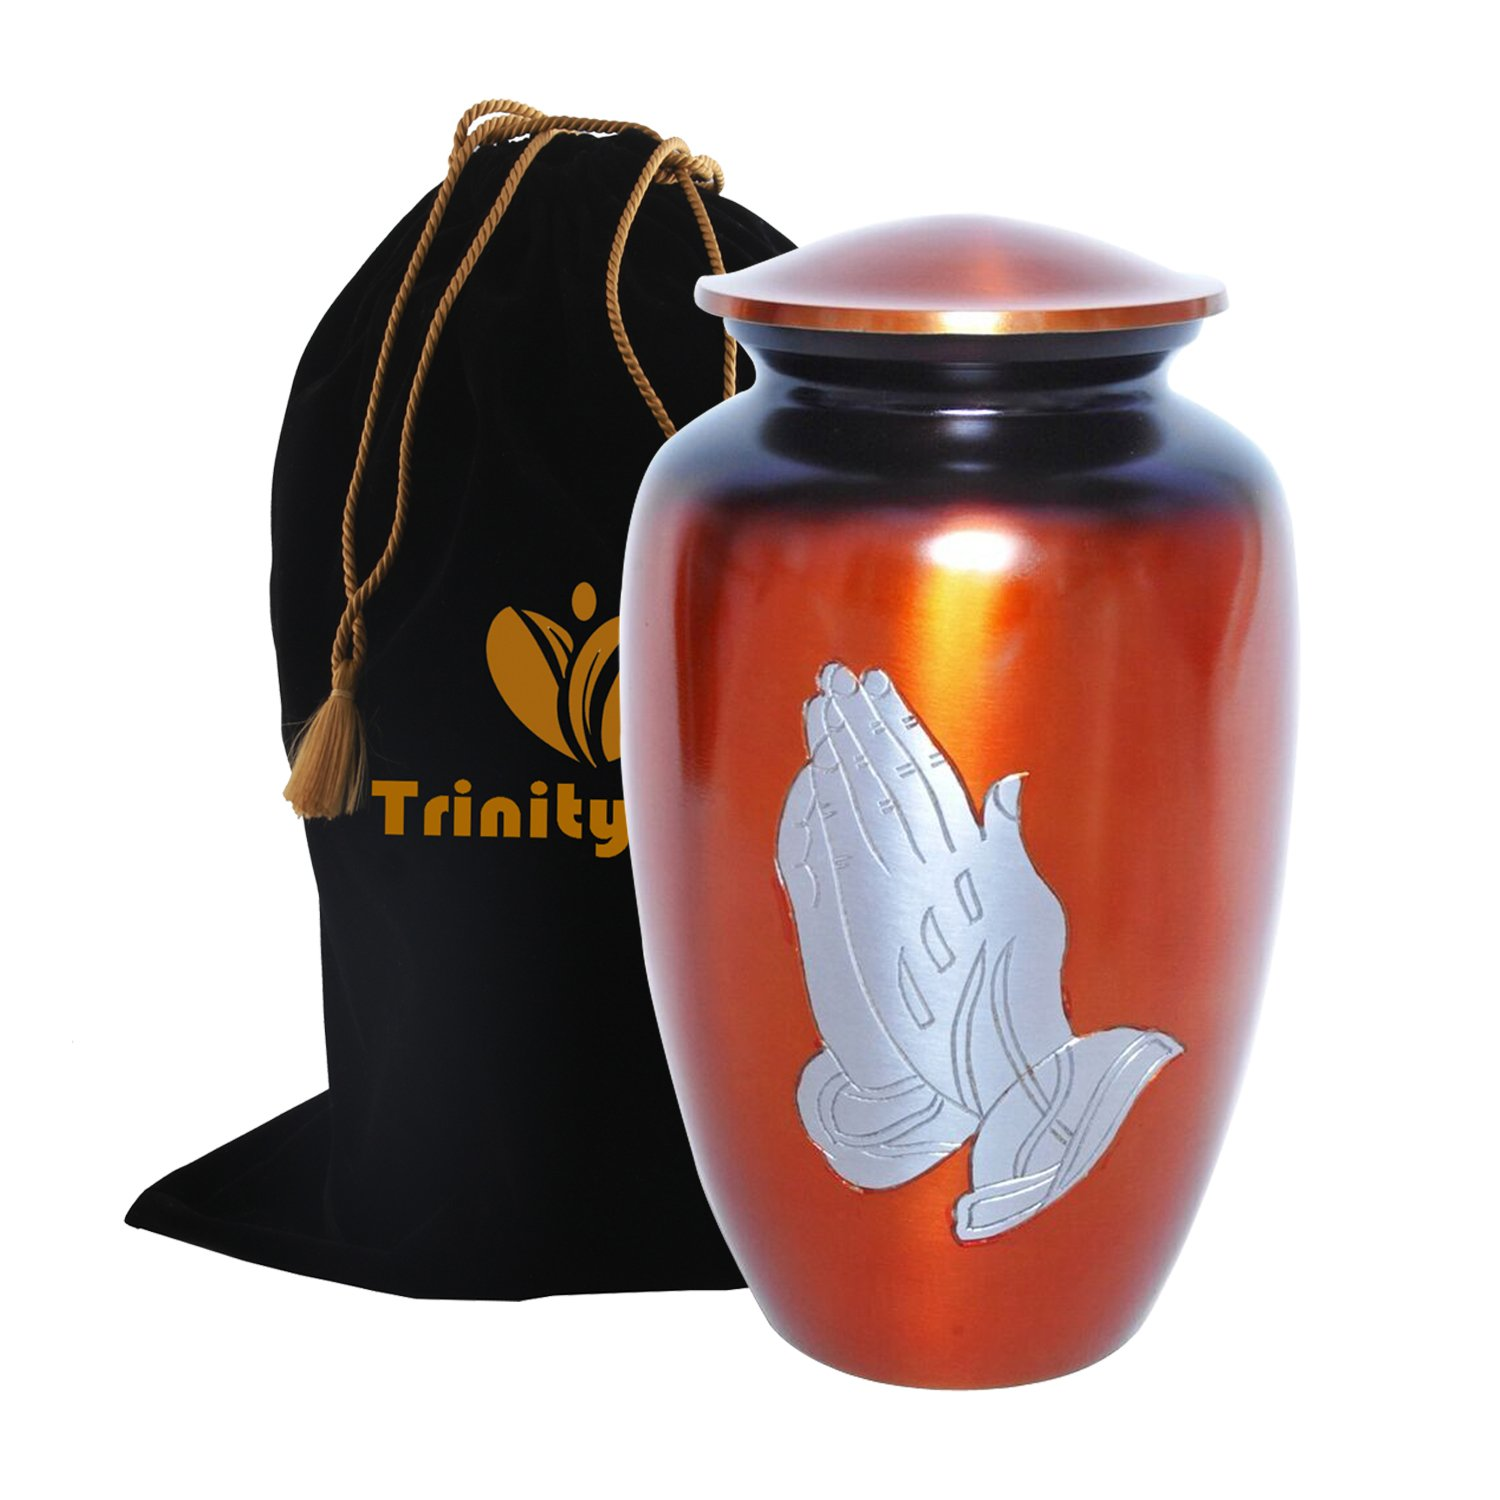 Praying Hand Cremation Urn - Beautifully Handcrafted Adult Funeral Urn - Solid Metal Funeral Urn - Affordable Urn for Human Ashes with Free Velvet Bag by Trinityurns